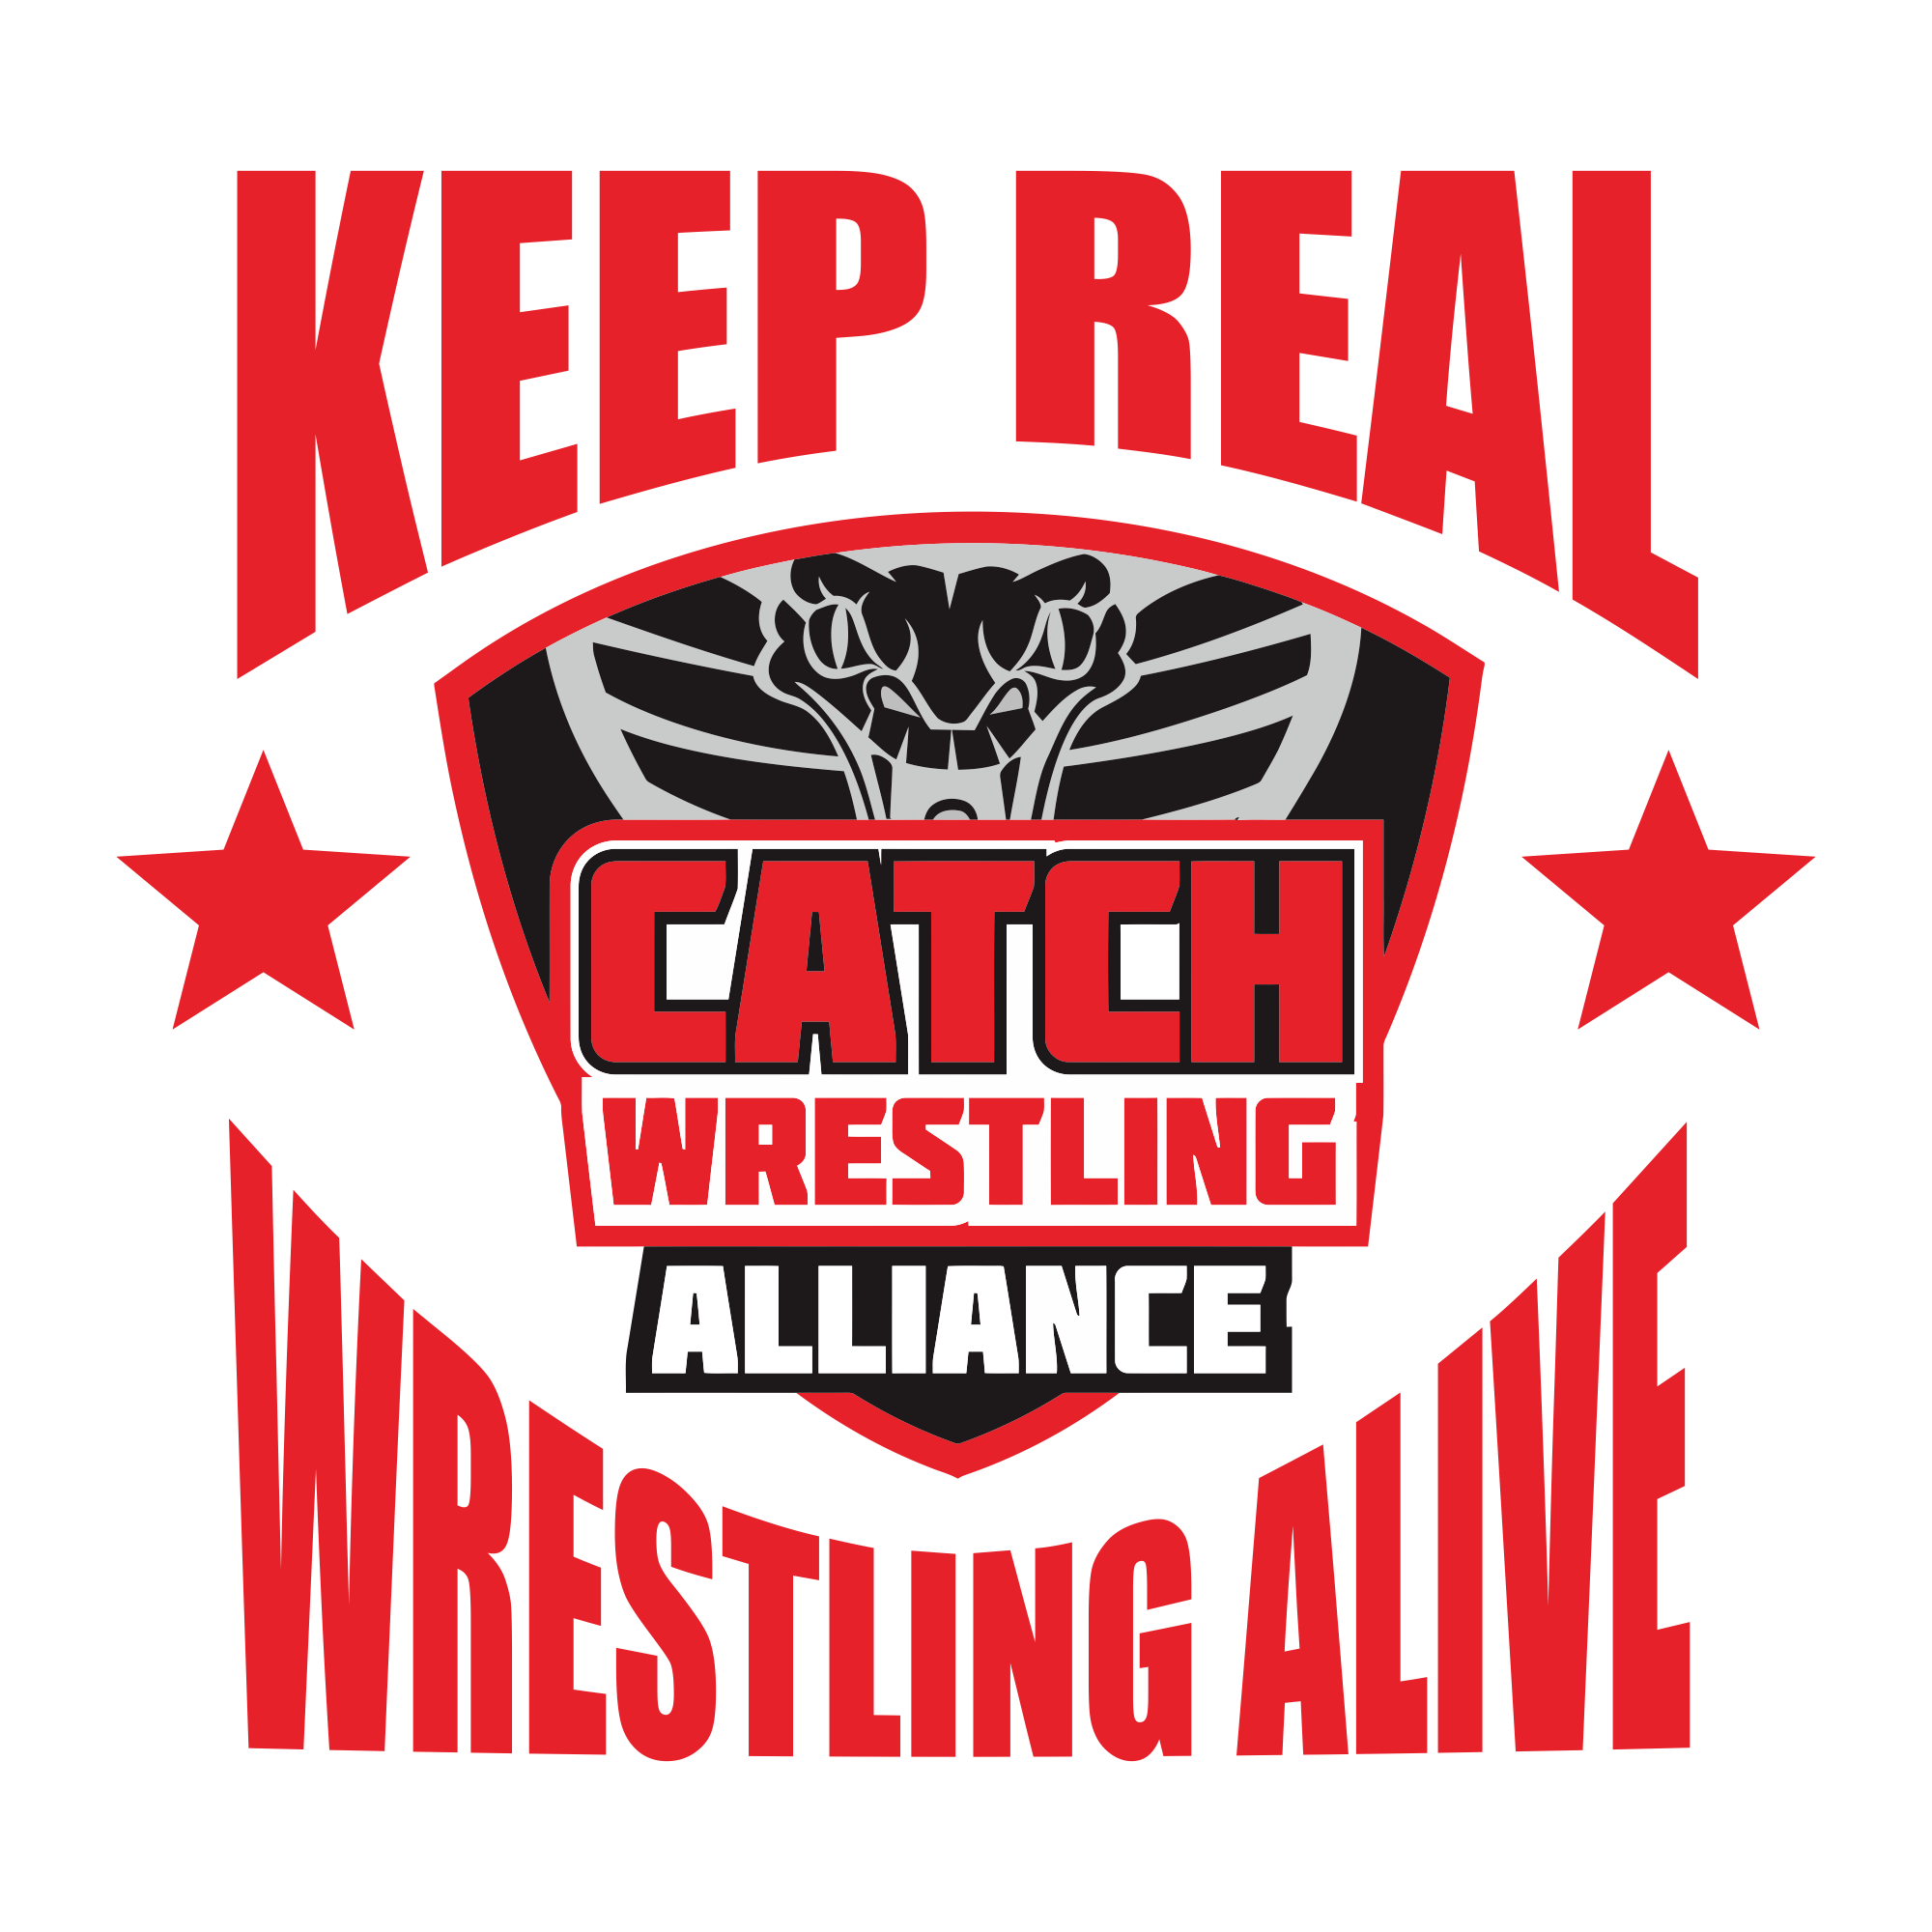 Catch Wrestling Alliance Academy